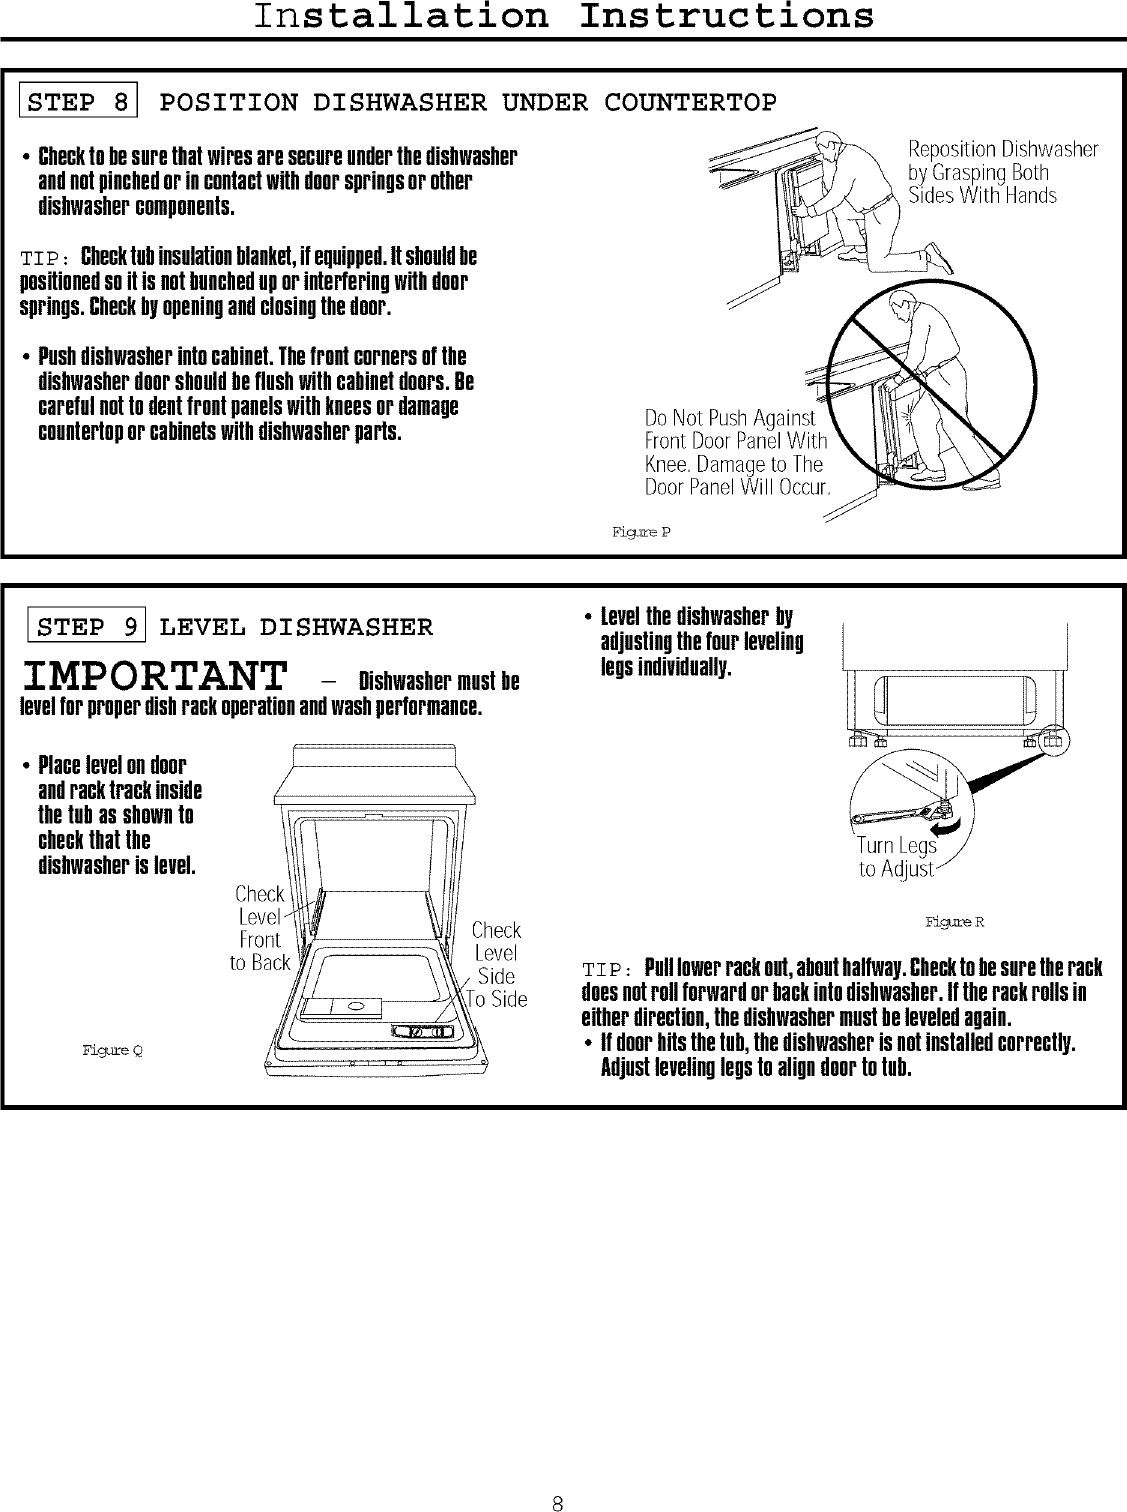 Frigidaire Fmb330rgs0 User Manual Dishwasher Manuals And Guides L0709007 Schematic Diagram Page 8 Of 12